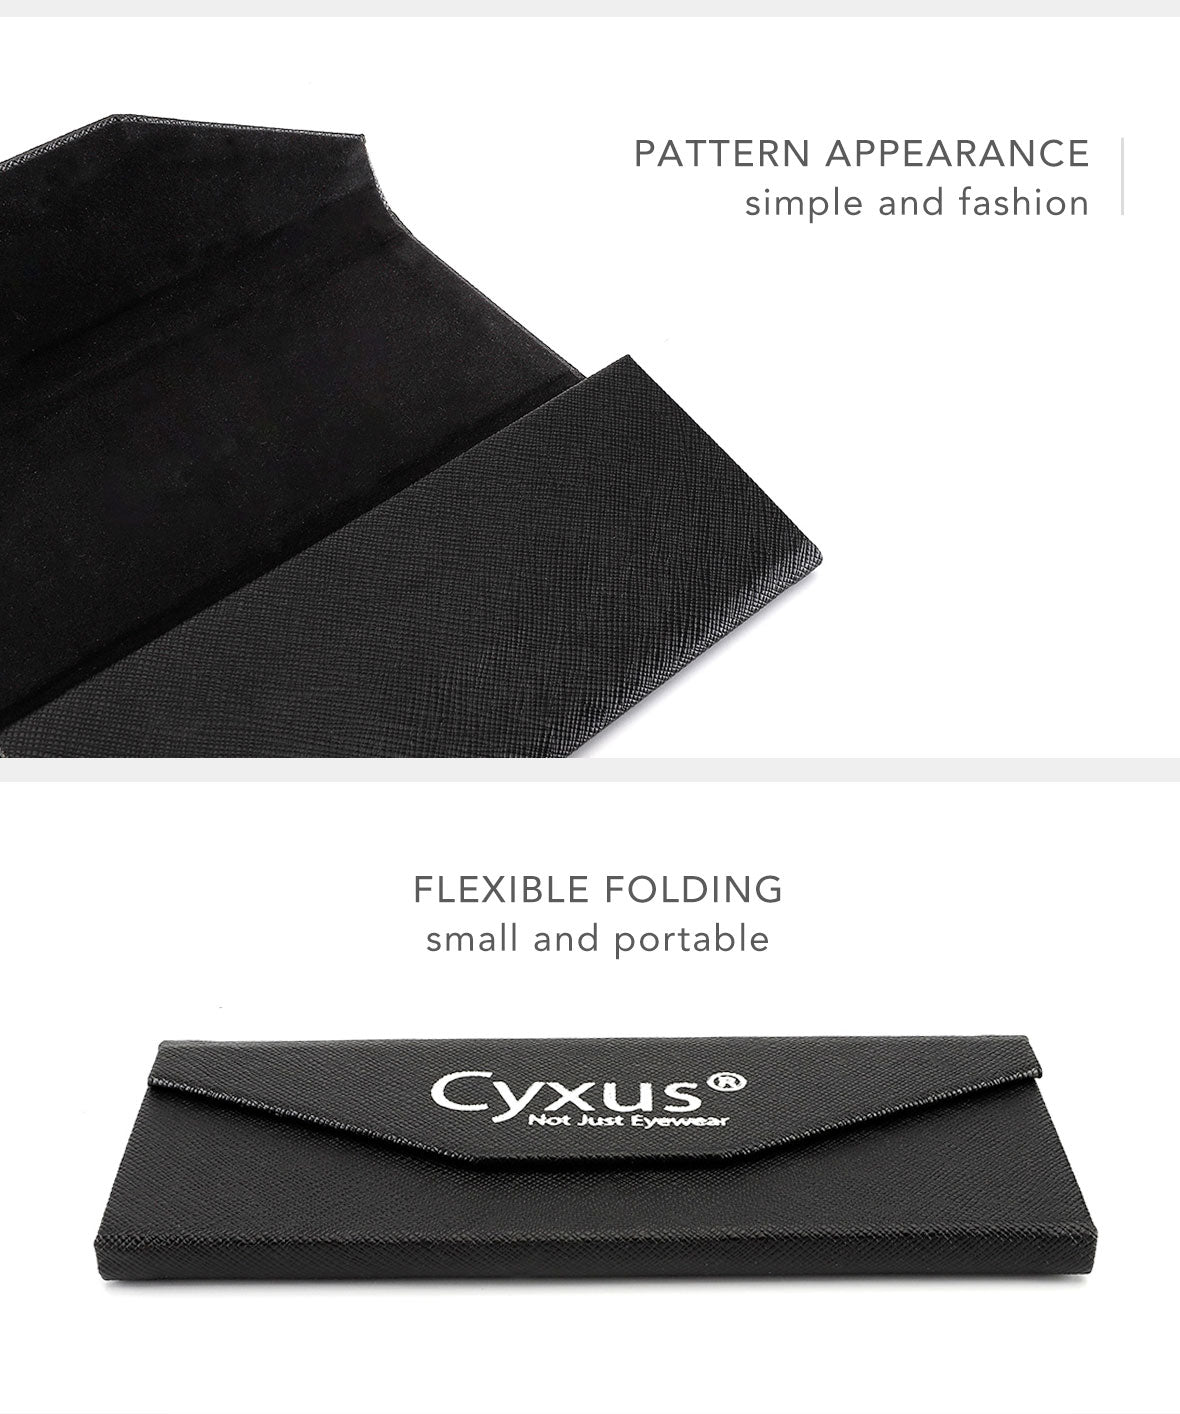 cyxus glasses box